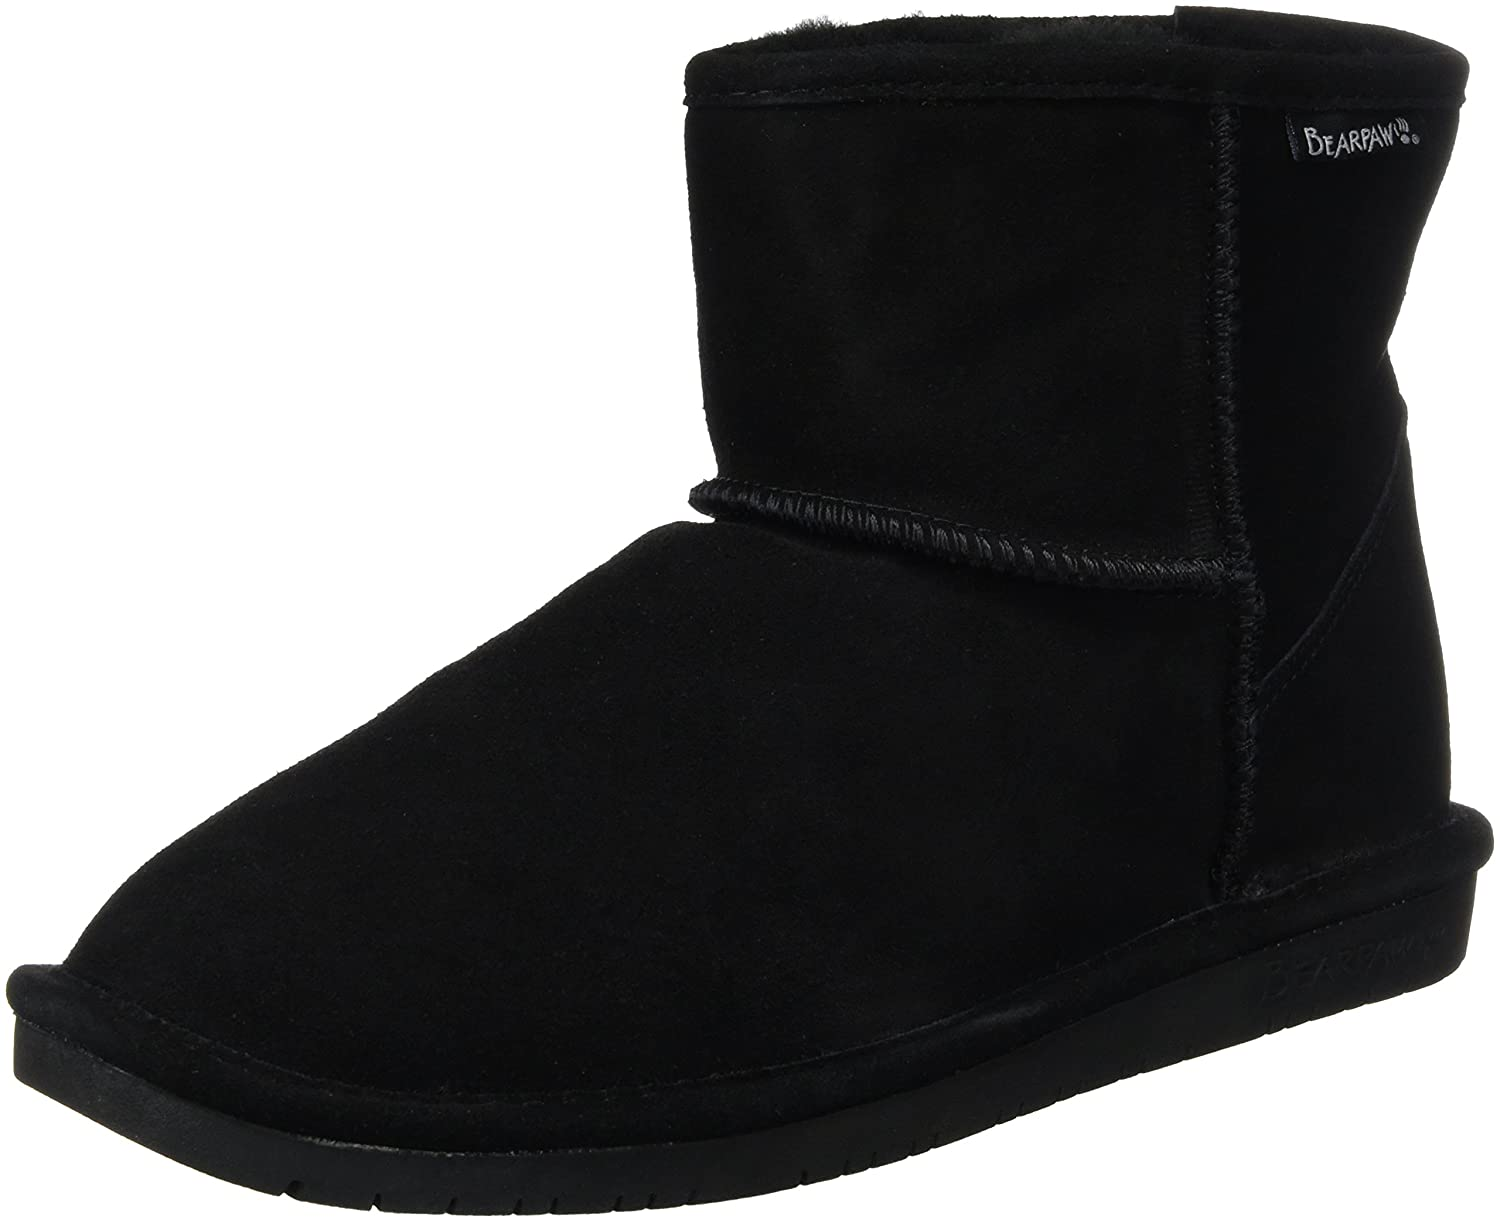 BEARPAW Demi Fashion Boot B00TE1LMQW 11 B(M) US|Black